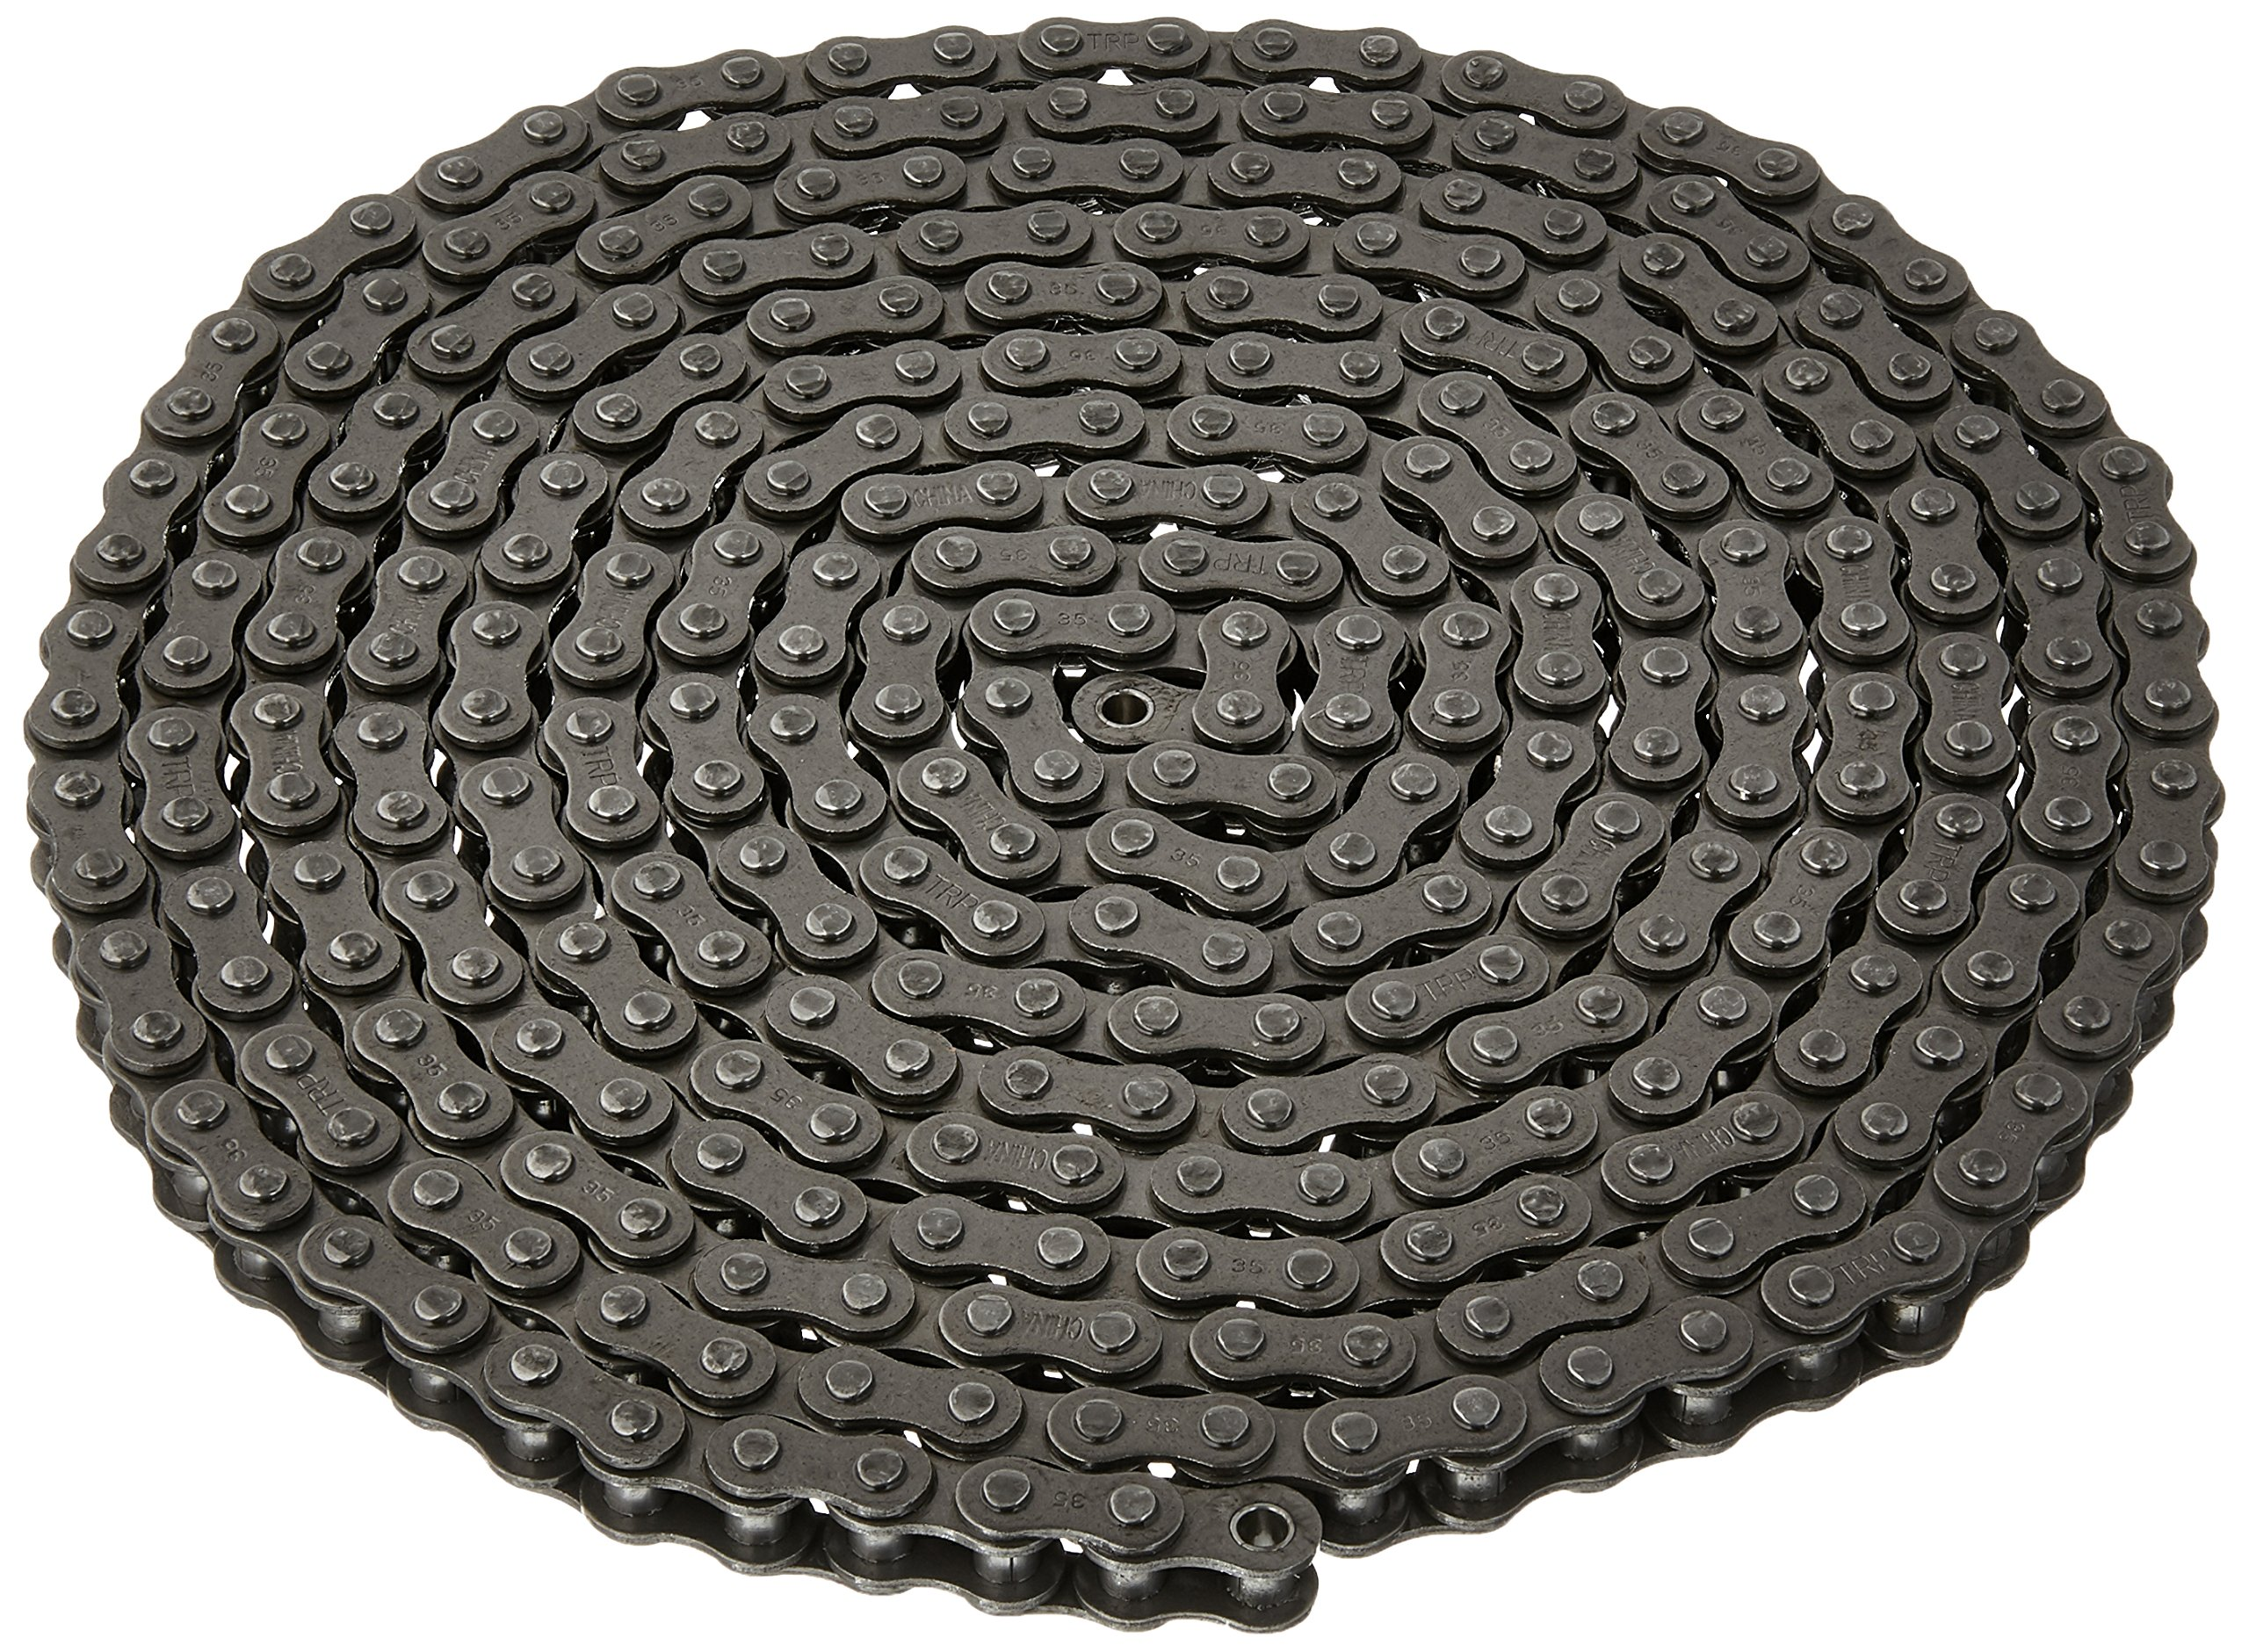 DAIDO CORPORATION TRC35-MD Number 35 Roller Chain, 10'